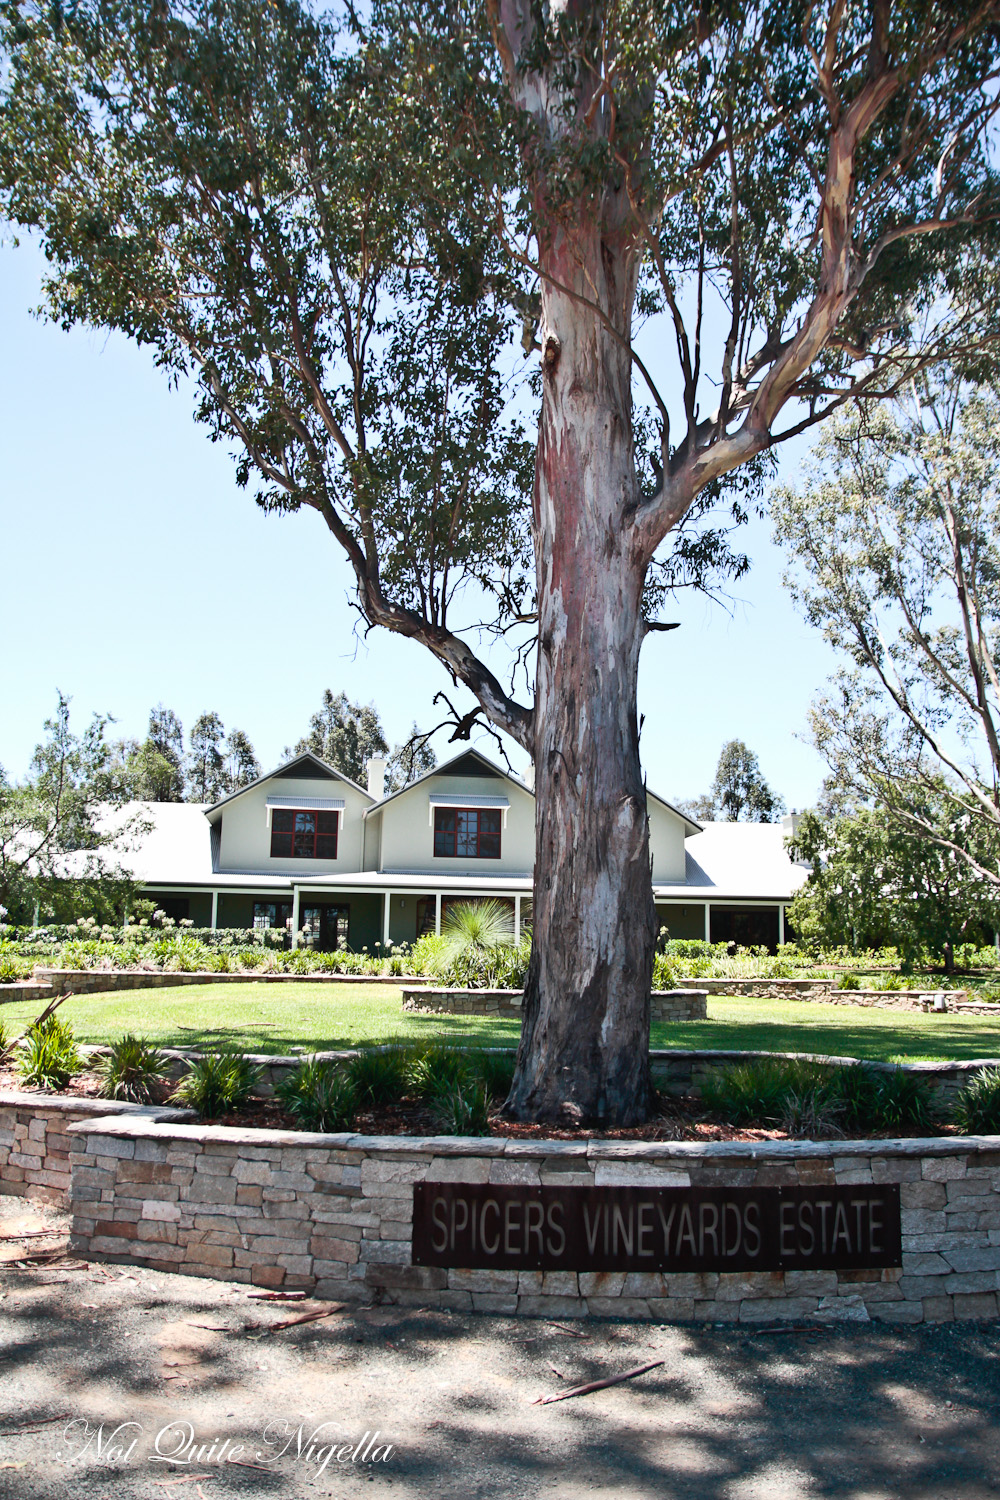 Spicers Vineyards Estate